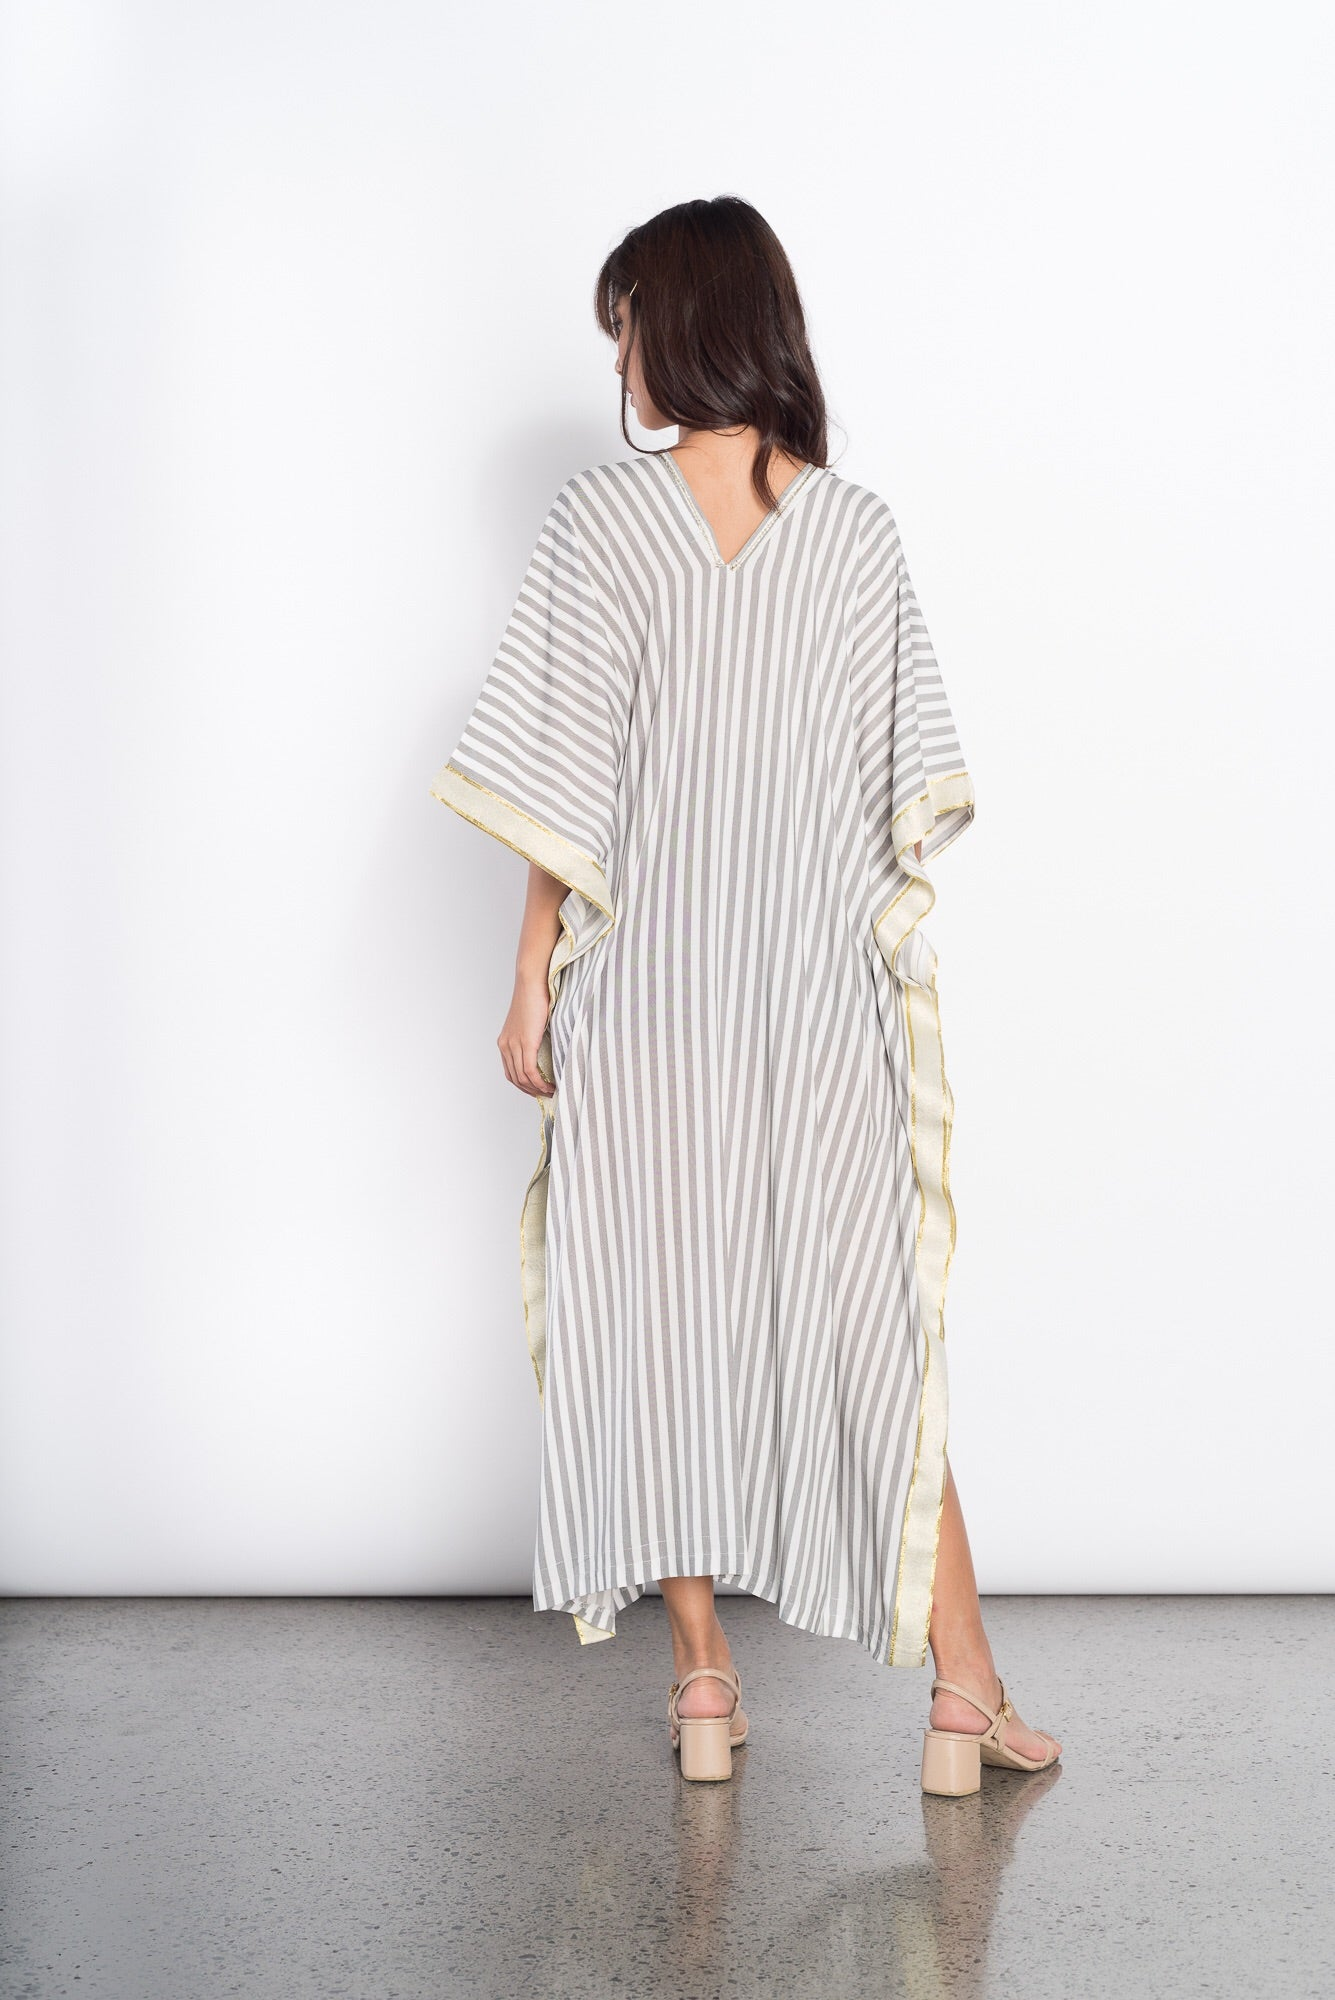 Glenna Cover Up in Black Stripes